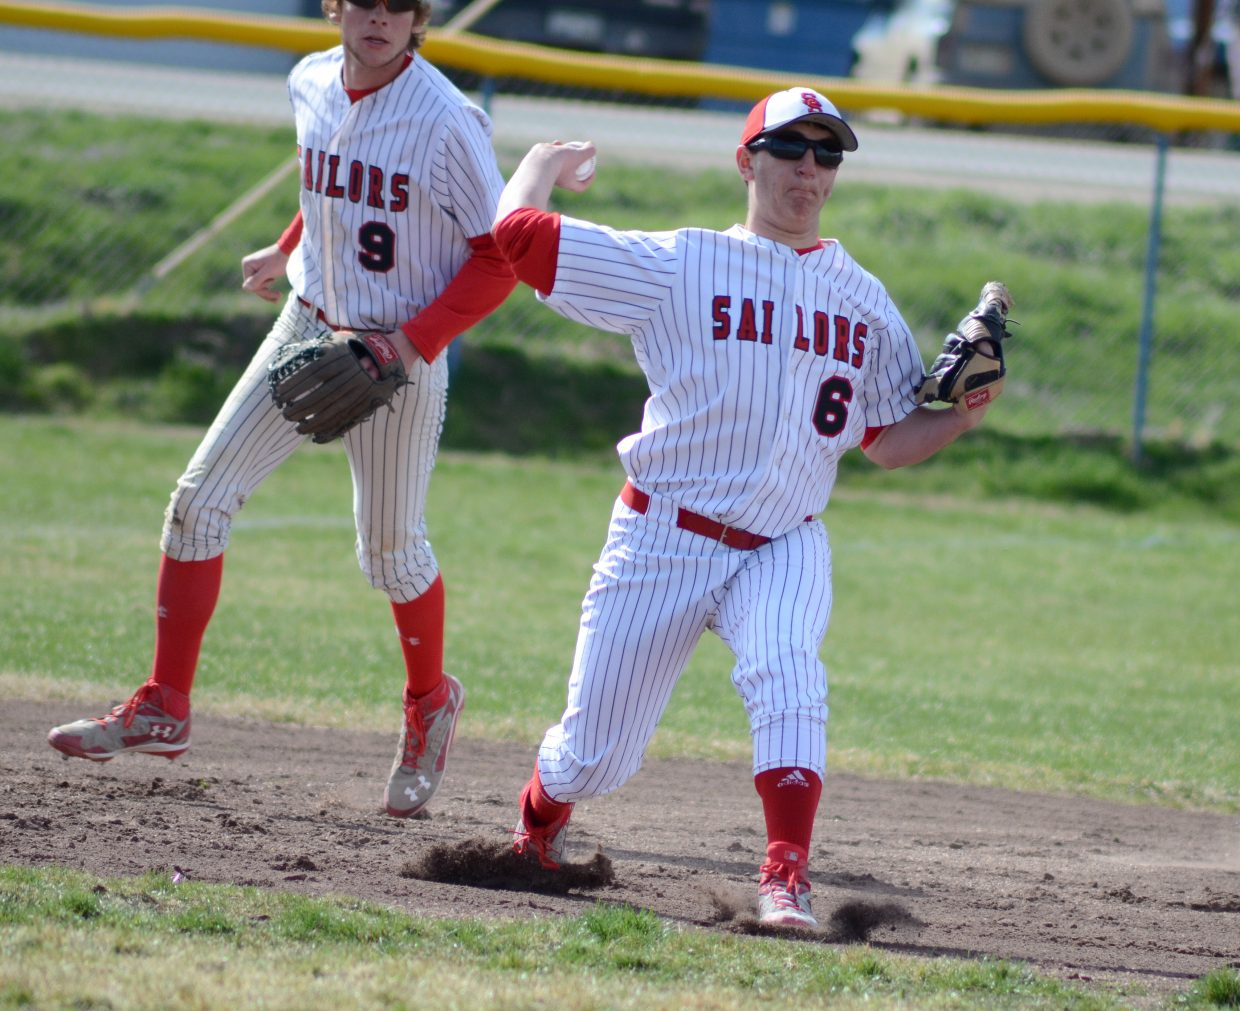 Steamboat third baseman Michael McRight throws to first base for an out Tuesday in Craig. The Sailors played solid defense to keep Moffat County off the scoreboard for most of their doubleheader Tuesday. Steamboat won both games, 19-0 and 16-1.